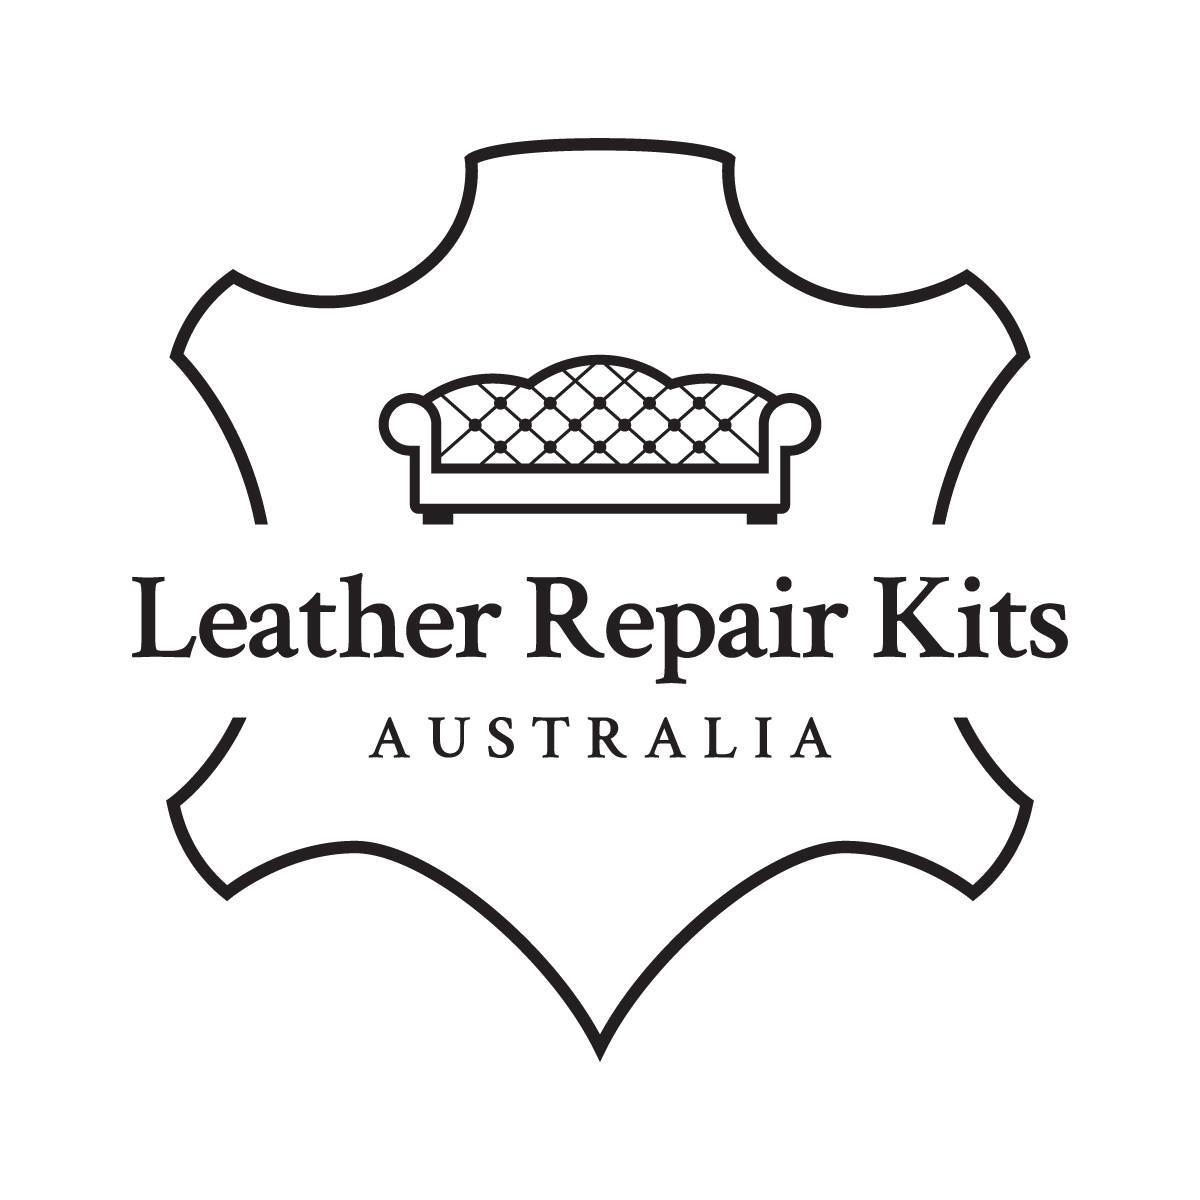 Leather Cleaner and Care Products, DIY Leather Restoration ...